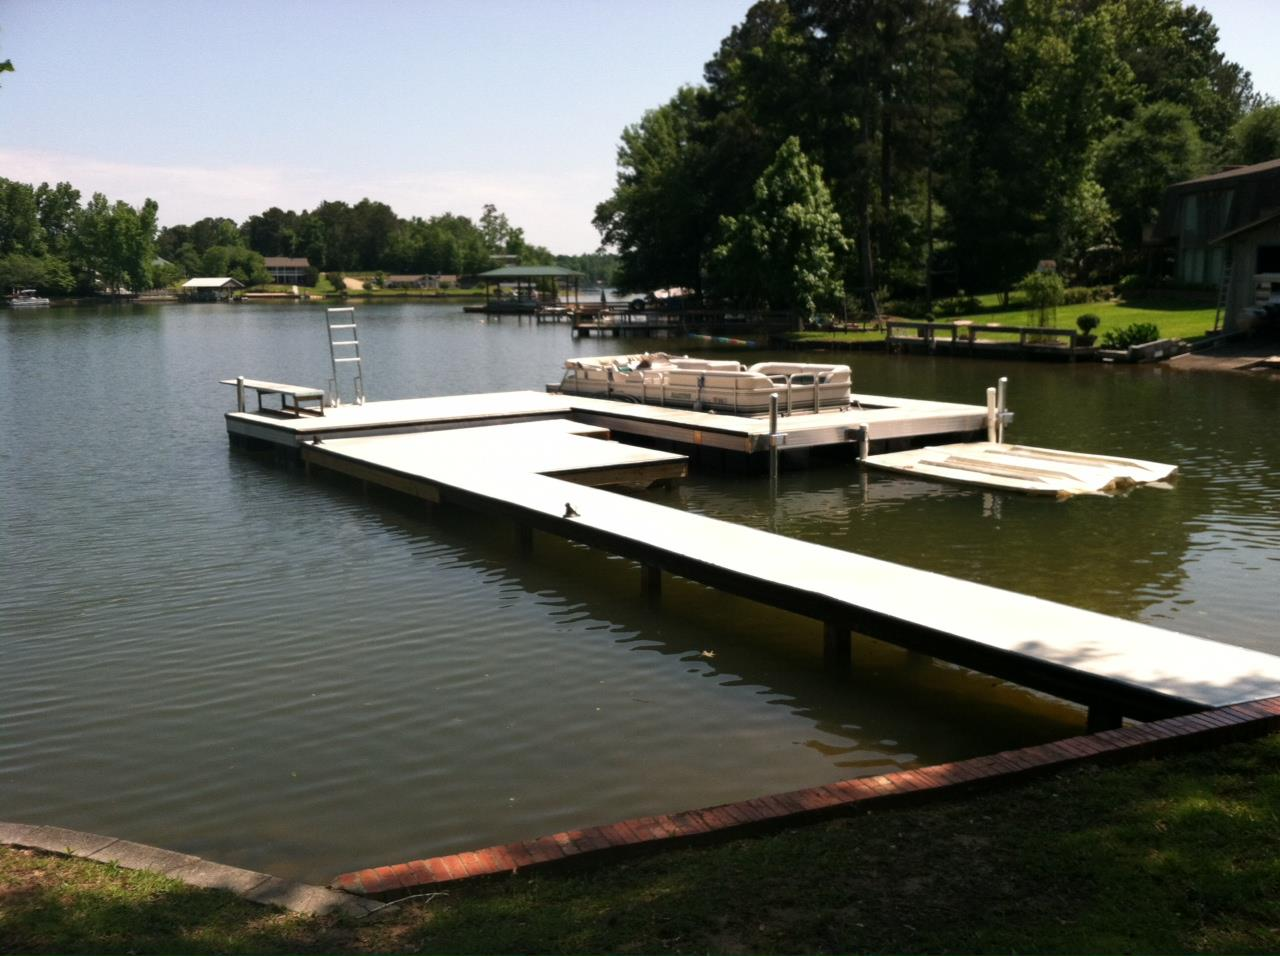 Dock Design Ideas boat dock construction floating boat docks stationary boat docks Boat Dock Designs Boat Dock Plans And Designs Further Dock Design